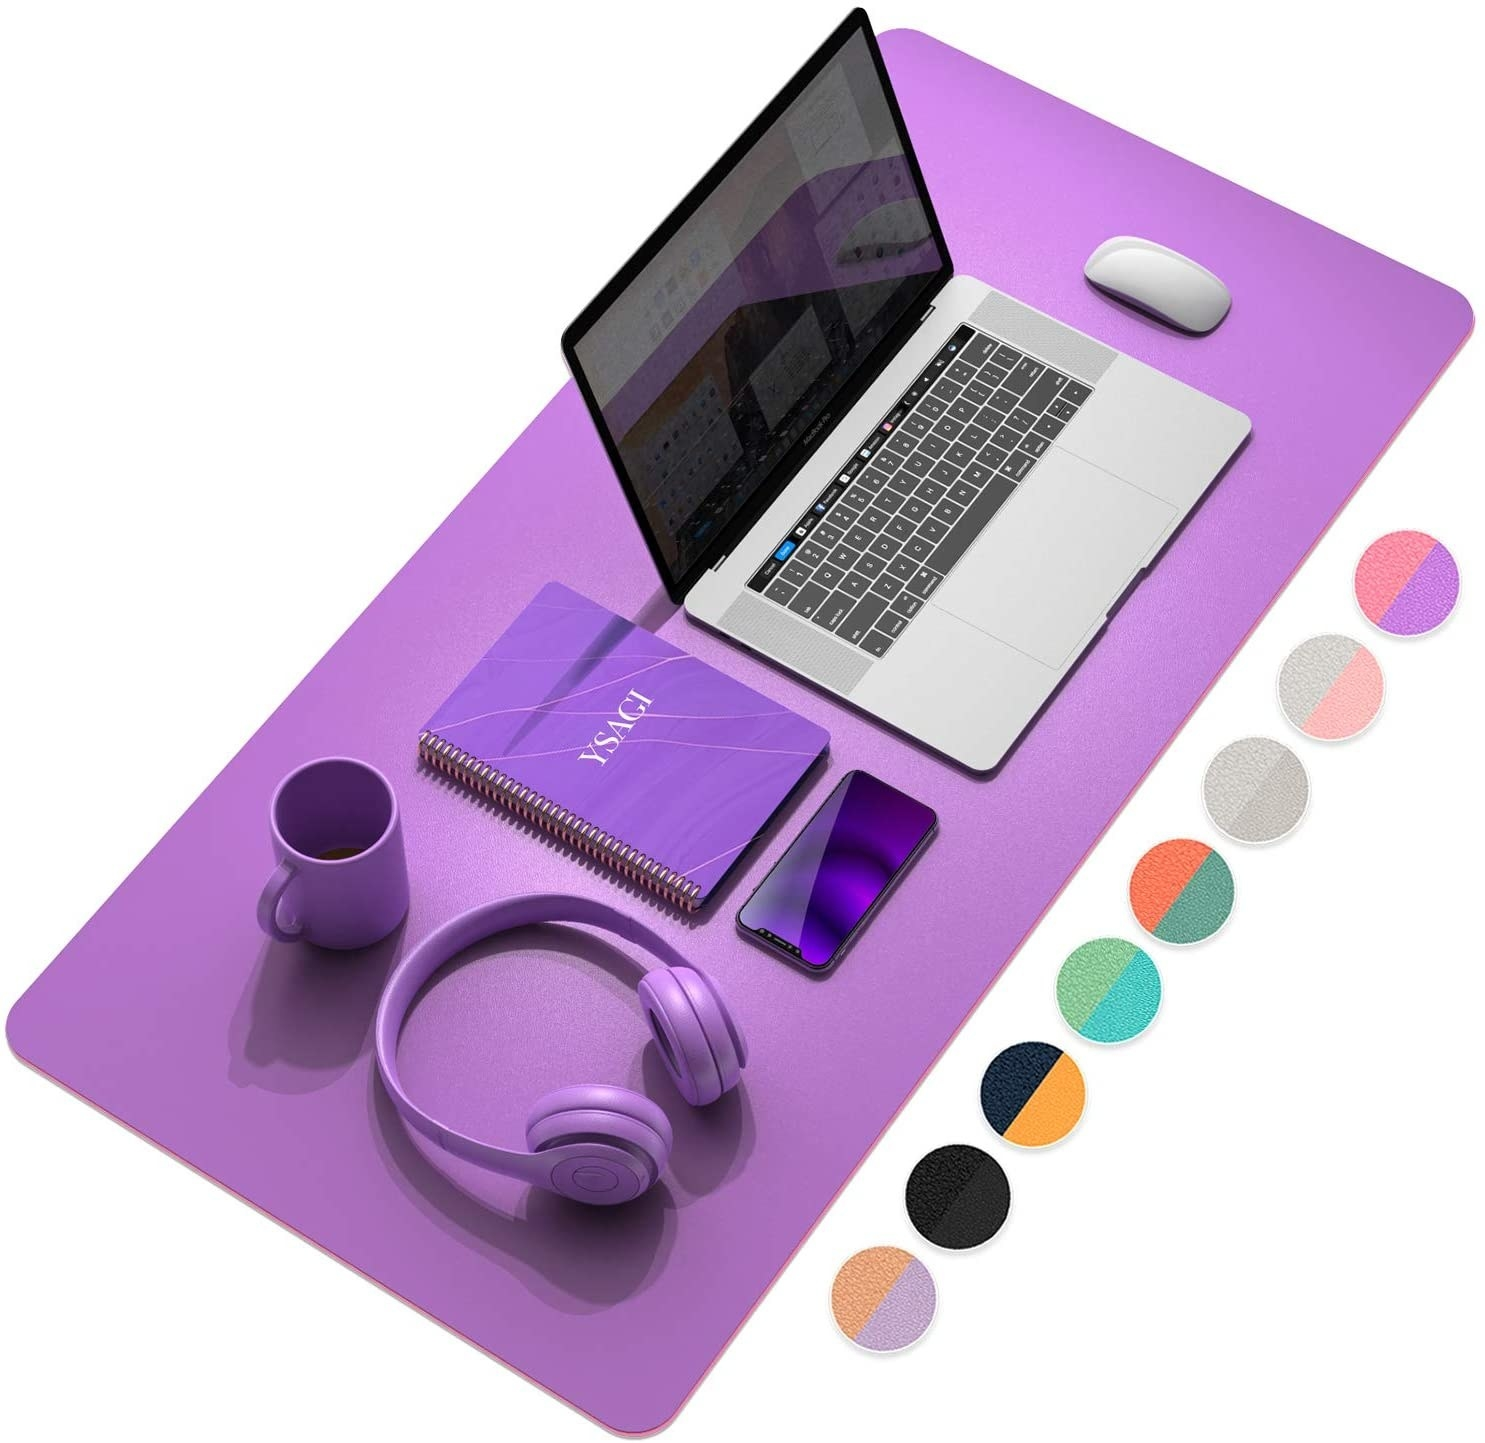 purple desk mat with a laptop and mouse on it